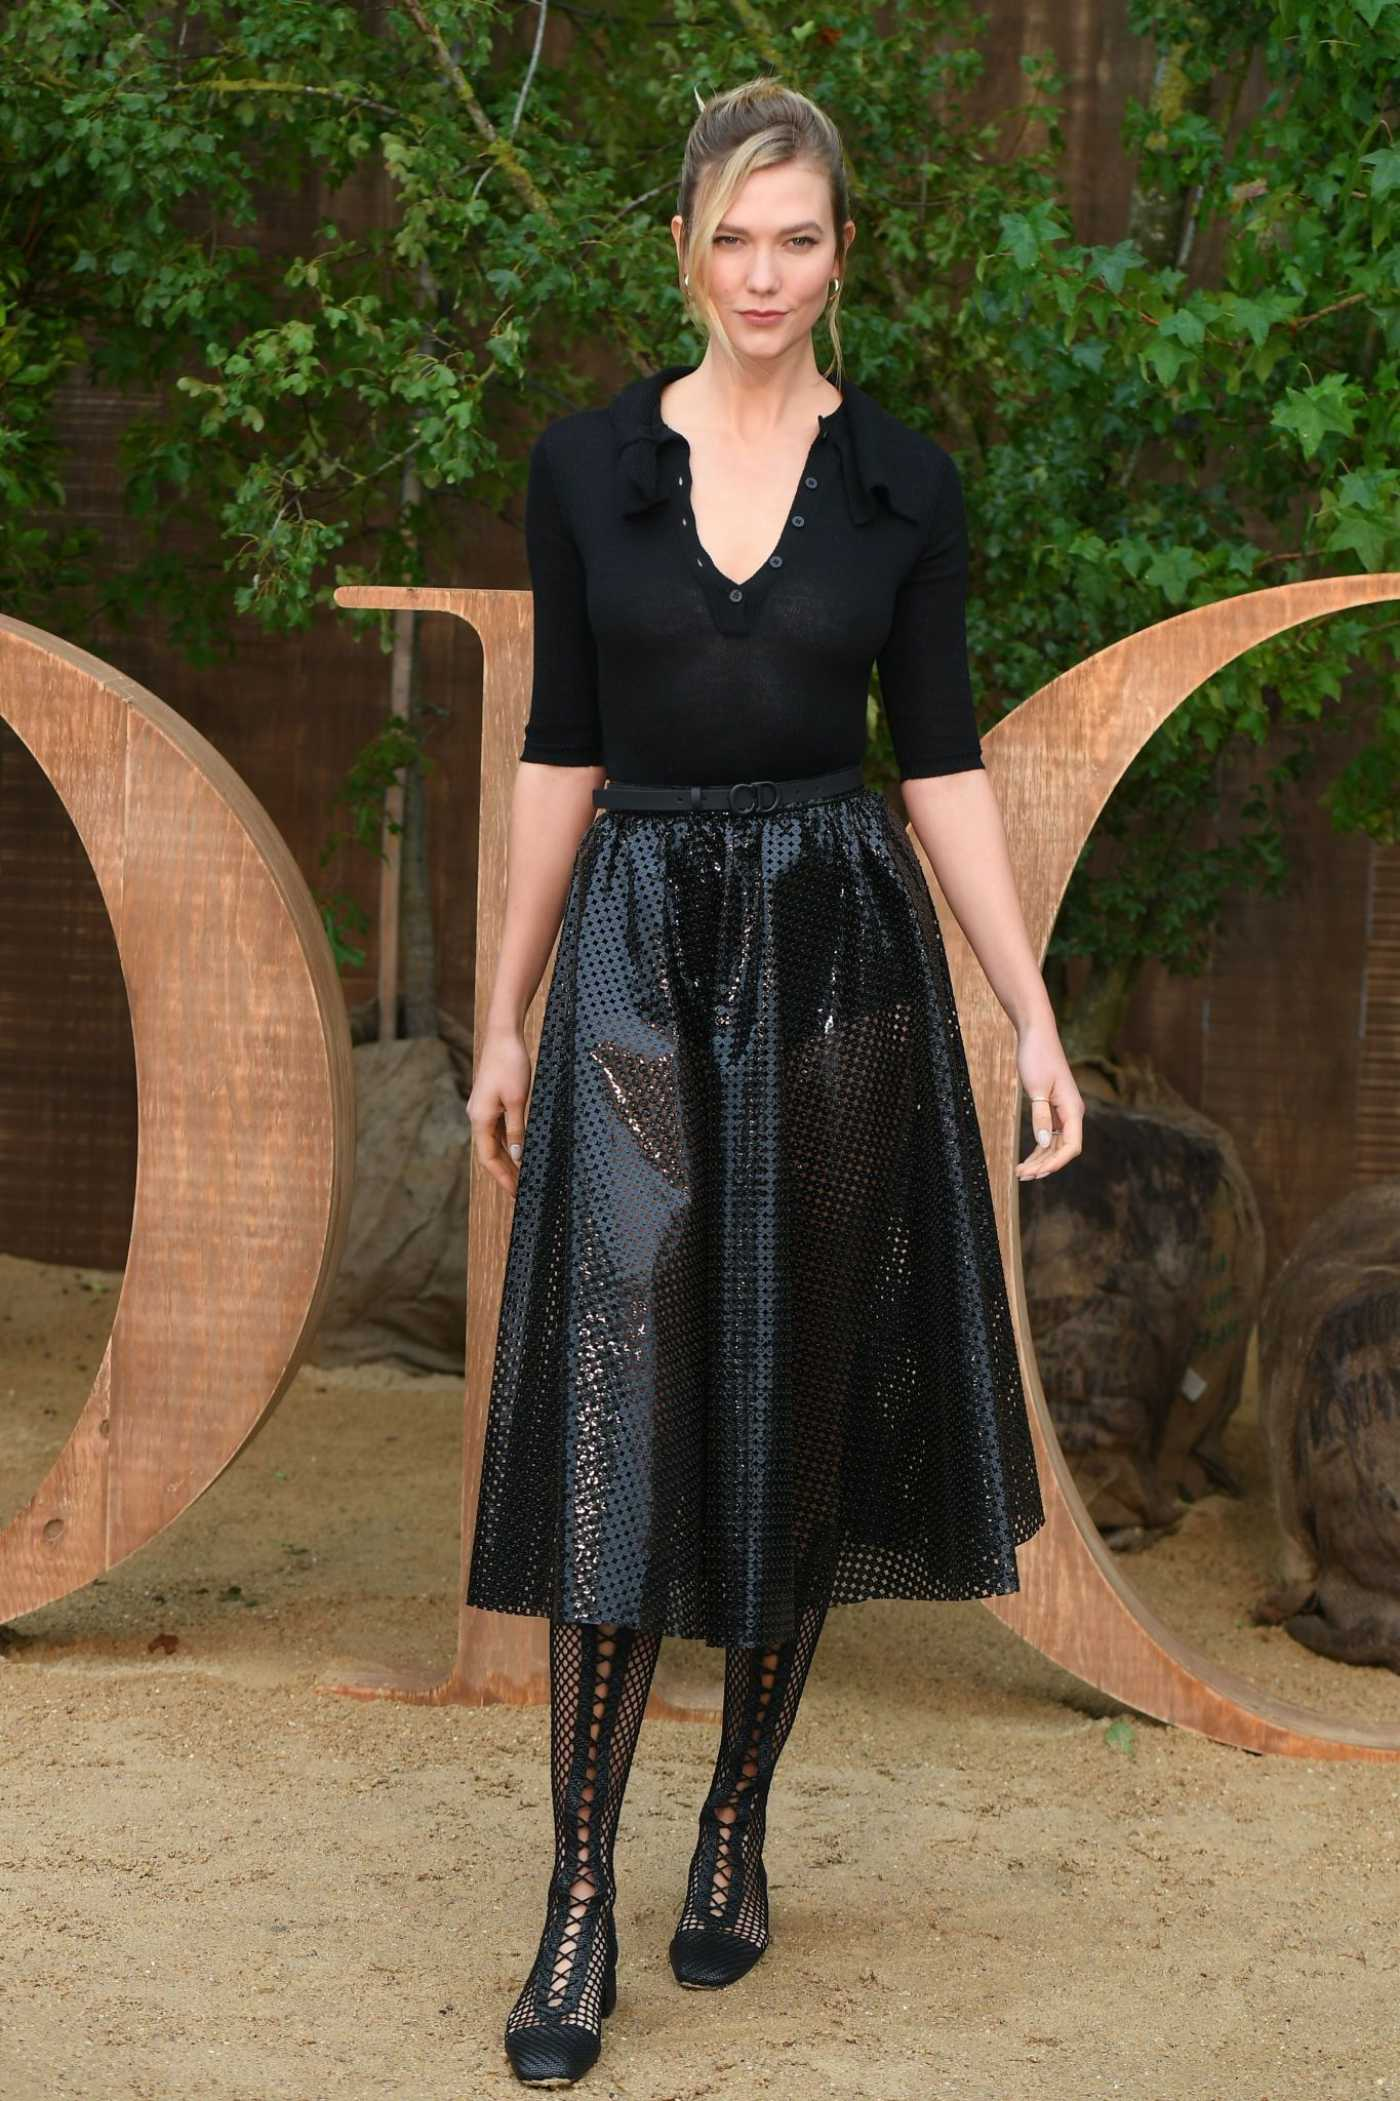 Karlie Kloss Attends the Christian Dior Fashion Show During 2019 Paris Fashion Week in Paris 09/24/2019